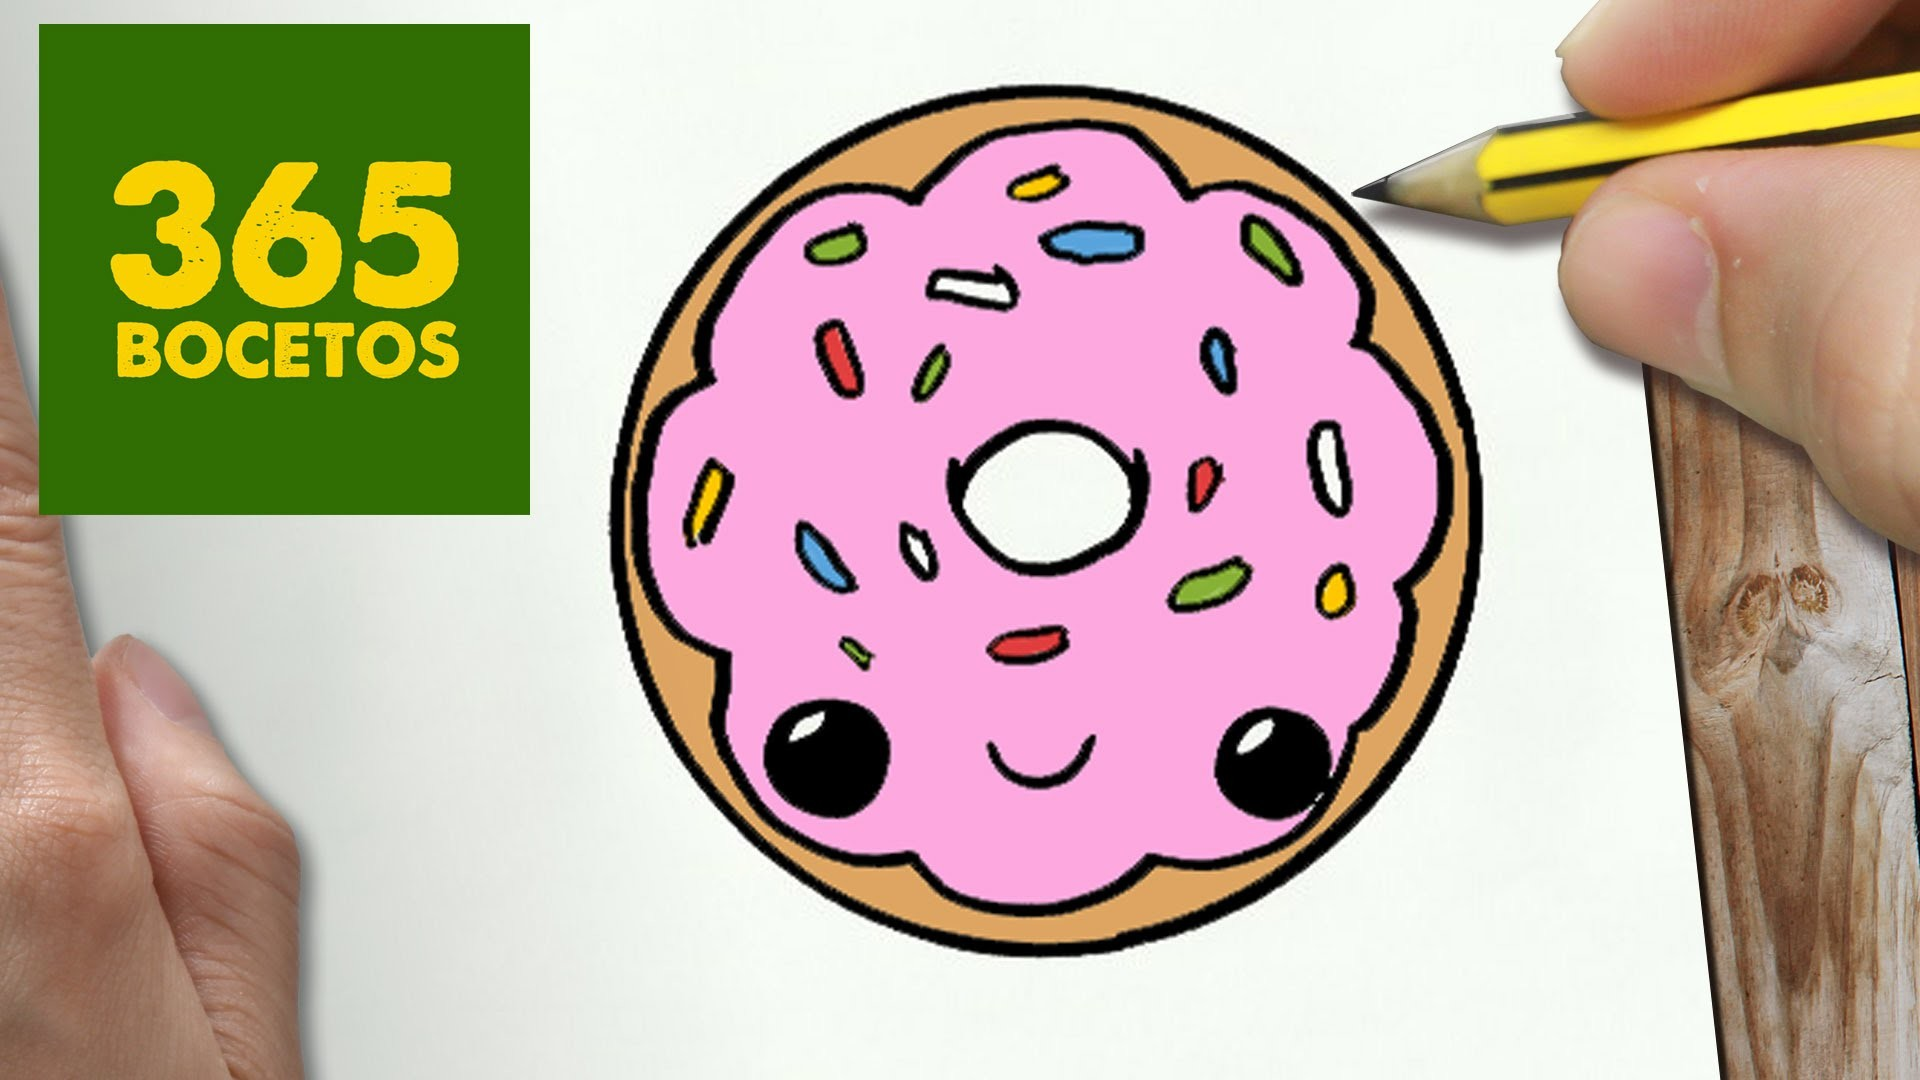 COMO DIBUJAR DONUT KAWAII PASO A PASO - Dibujos kawaii faciles - How to draw a DONUT